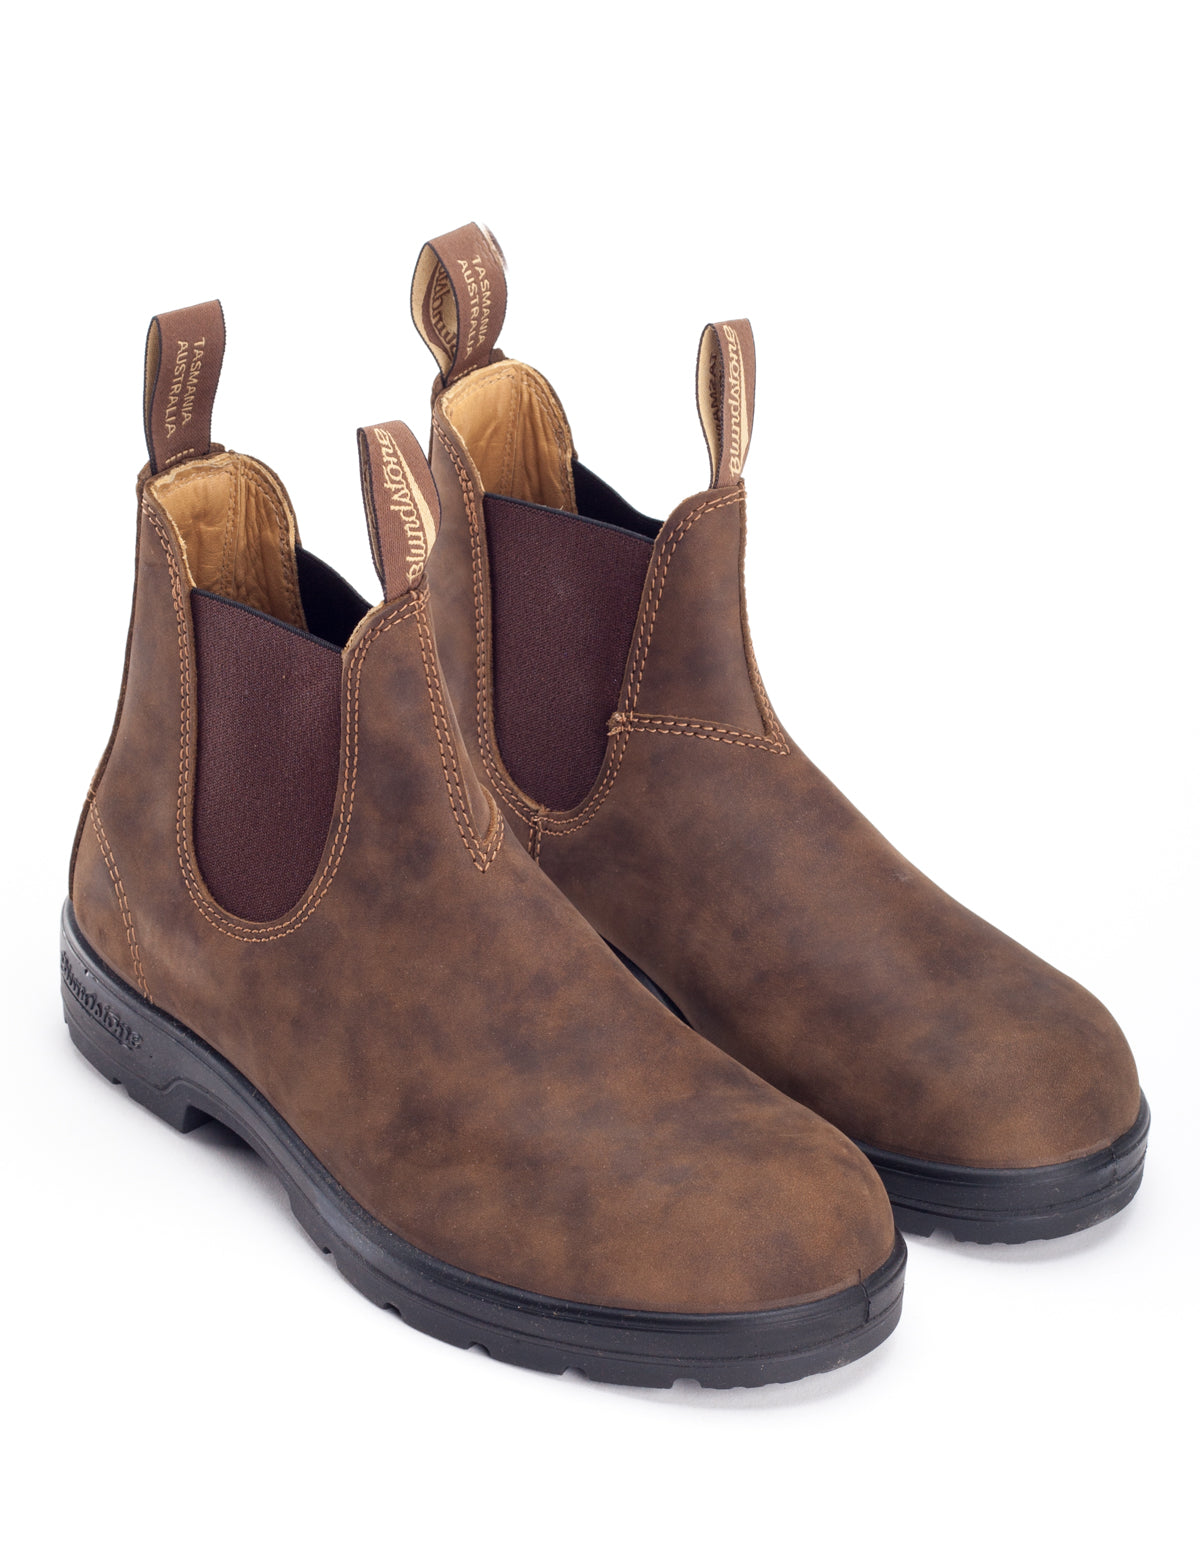 Blundstone-Round-Toe-Boot-Rustic-Brown-4